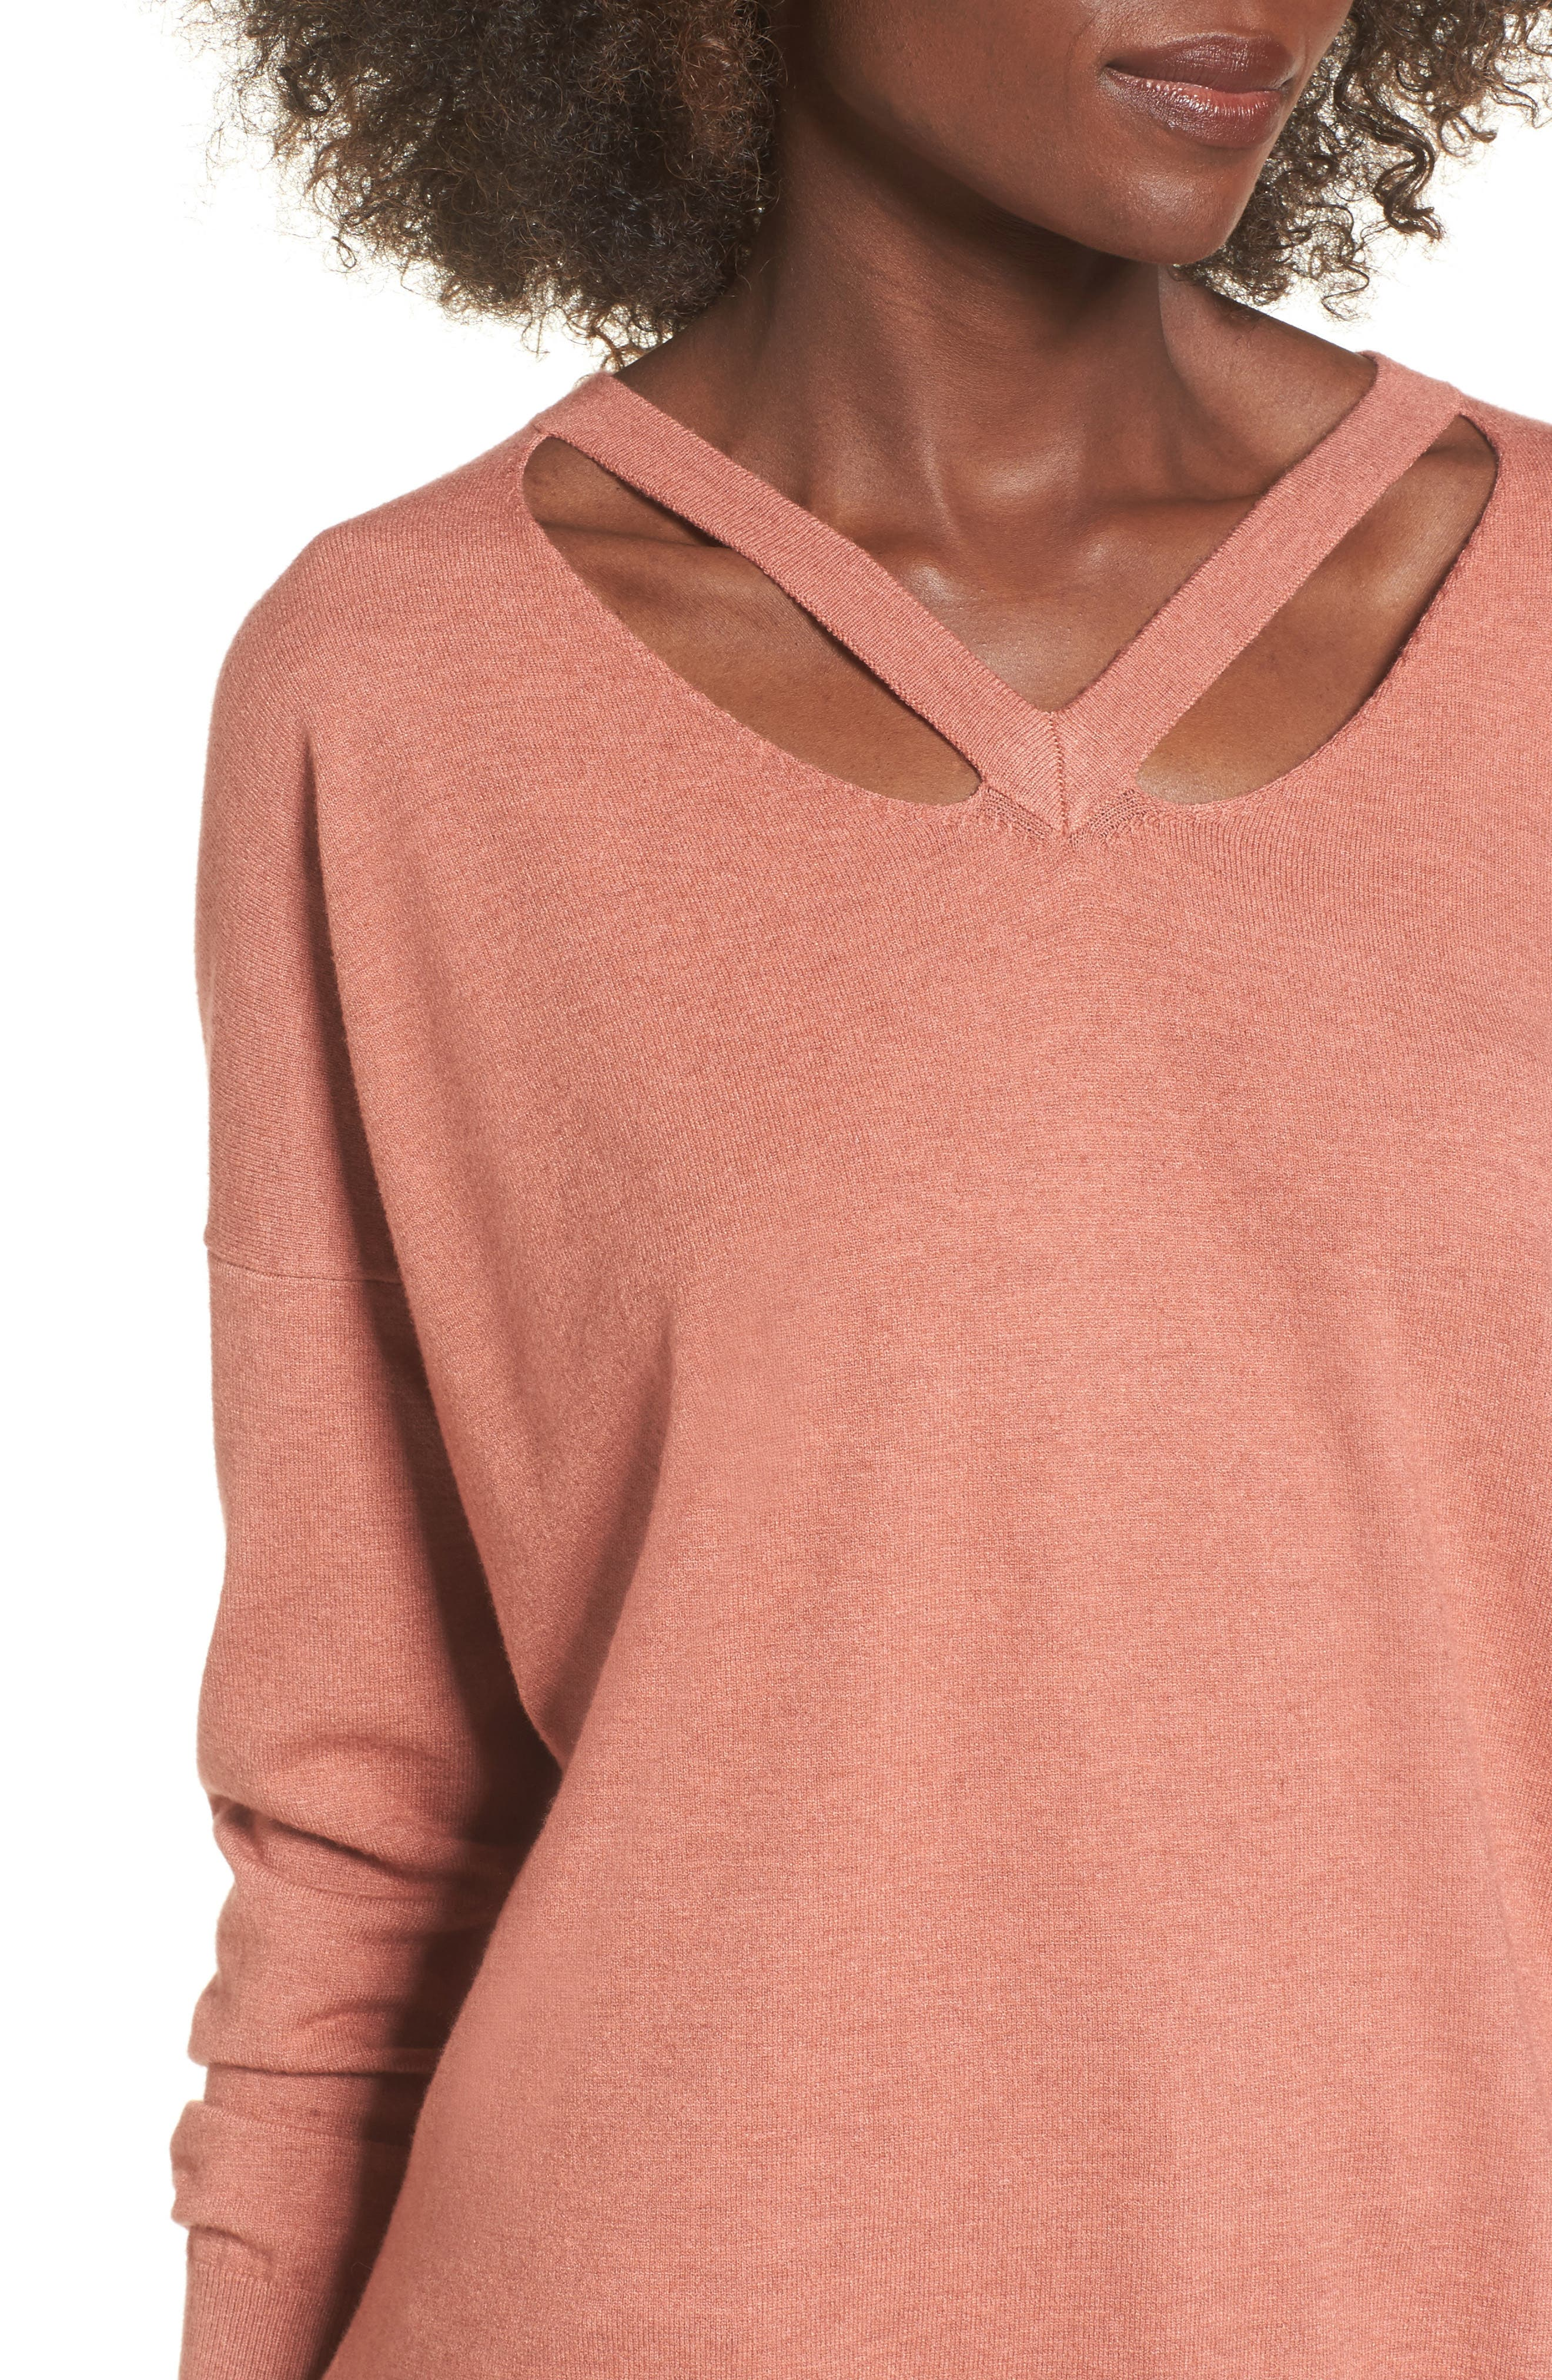 Cutout Detail Sweater,                             Alternate thumbnail 4, color,                             Heather Coral